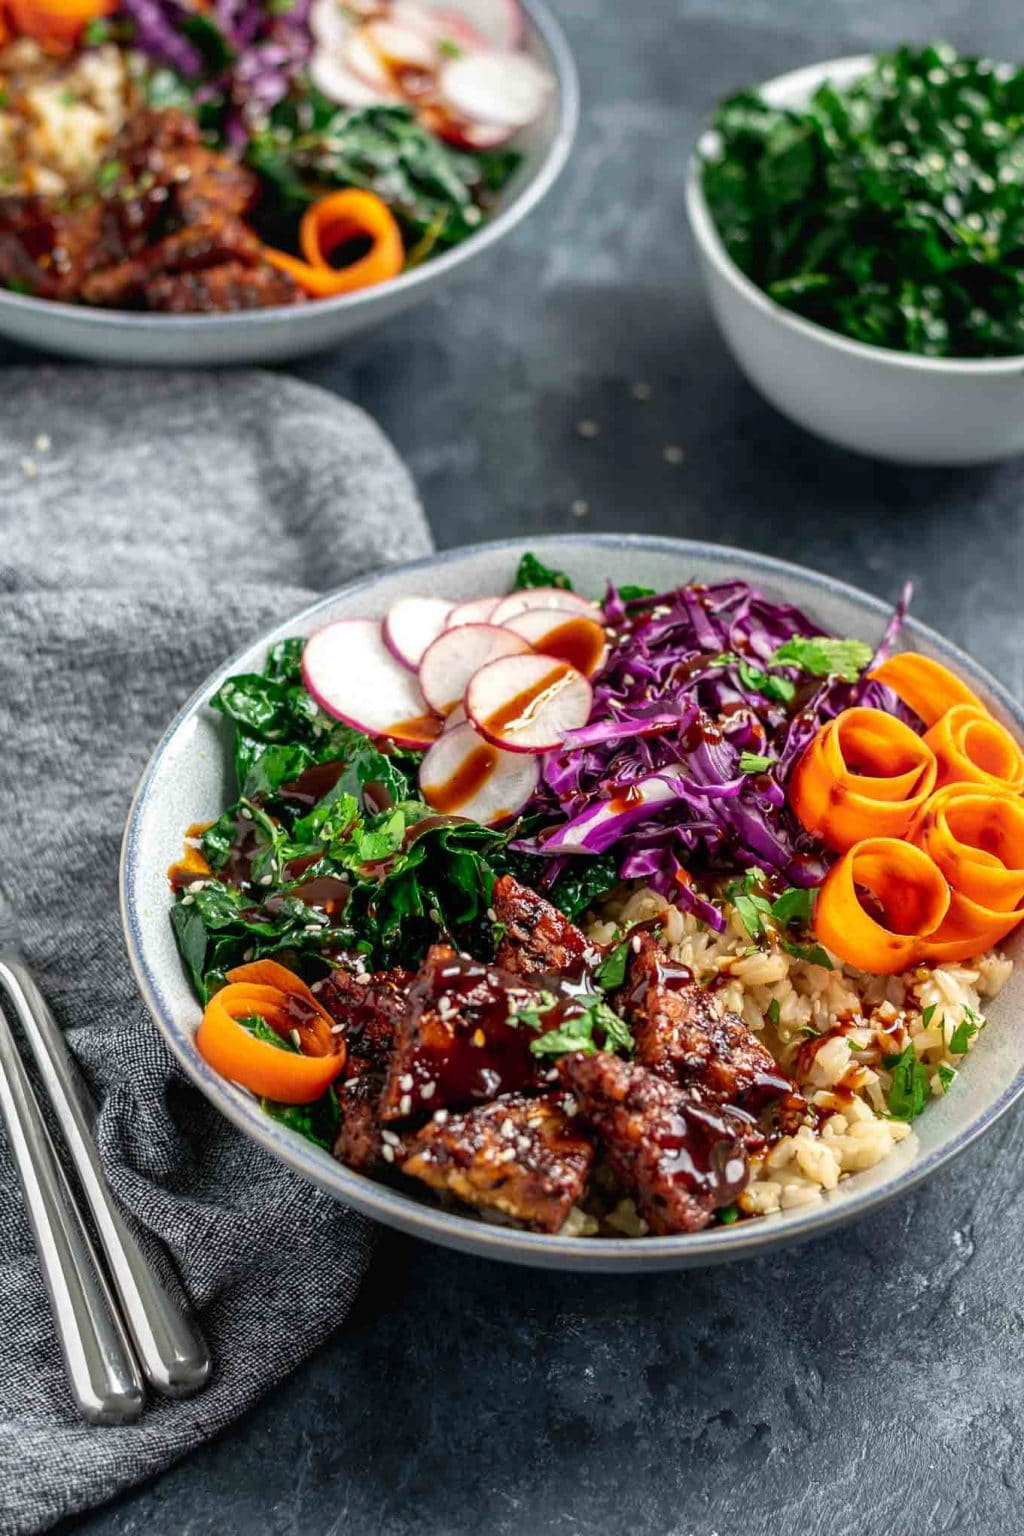 hoisin glazed tempeh bowls with sesame kale and hoisin sauce drizzle